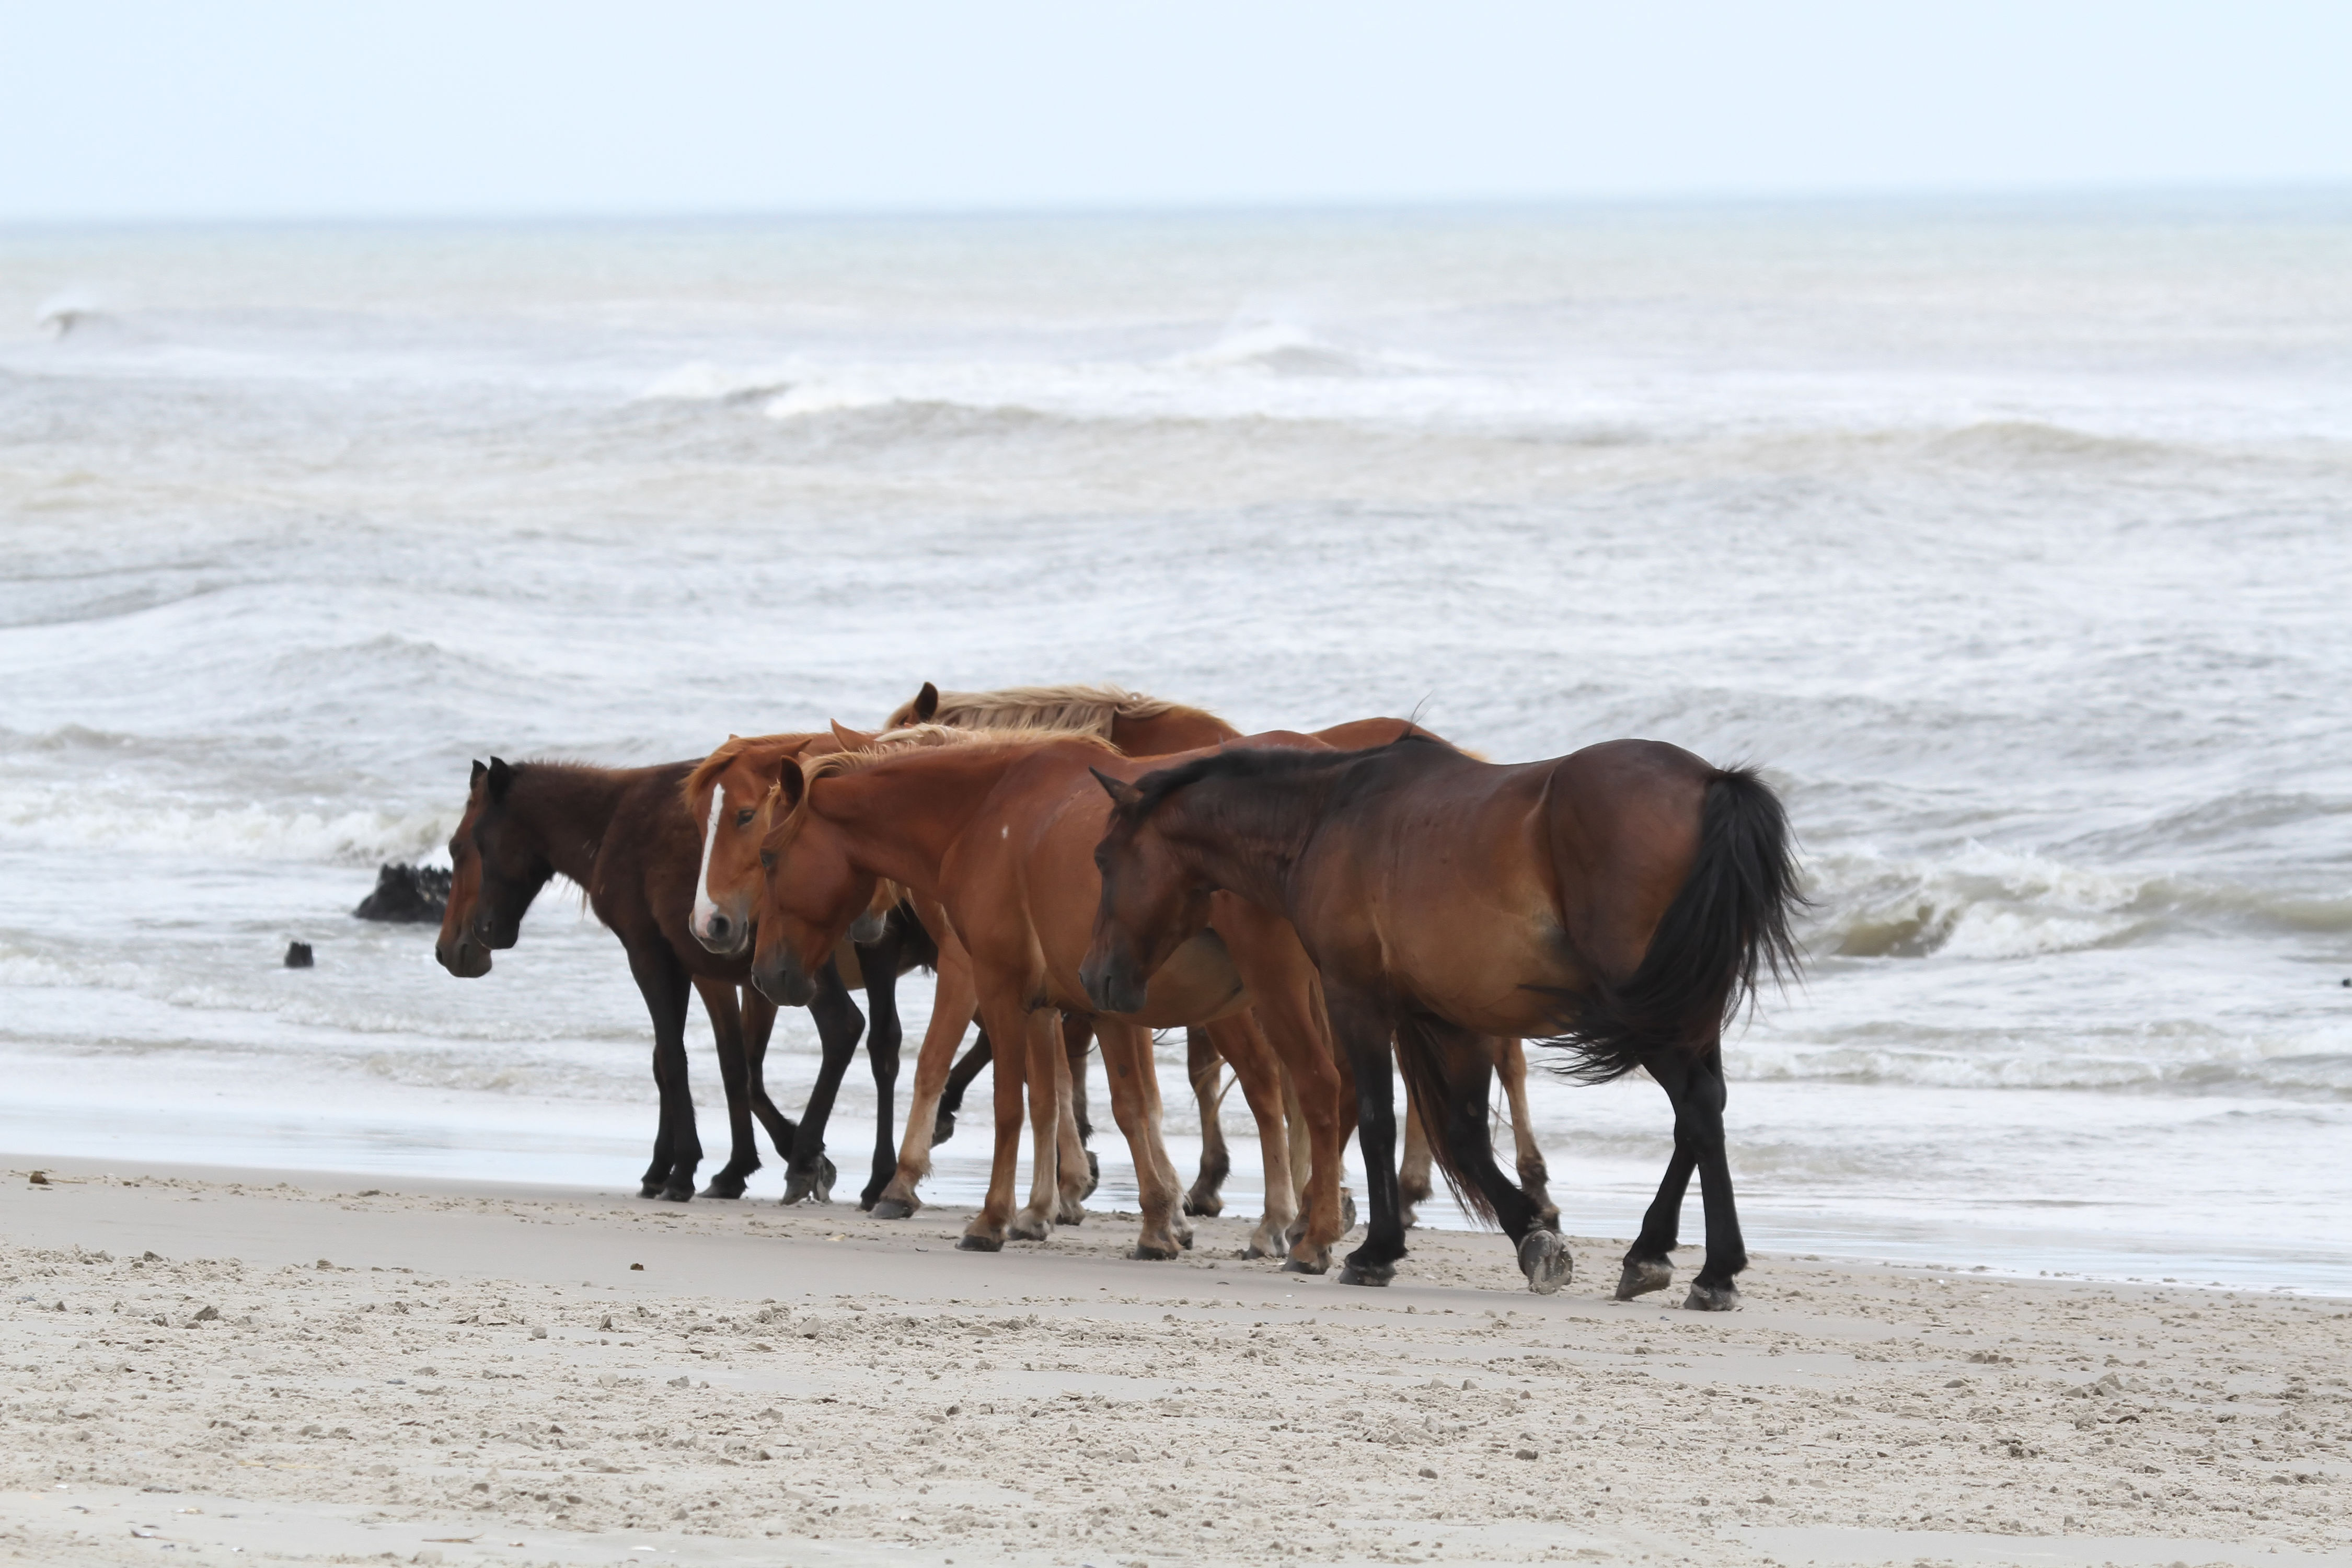 WATCH: North Carolina's Wild Horses Will Rely on This Interesting Trick to Weather Hurricane Dorian